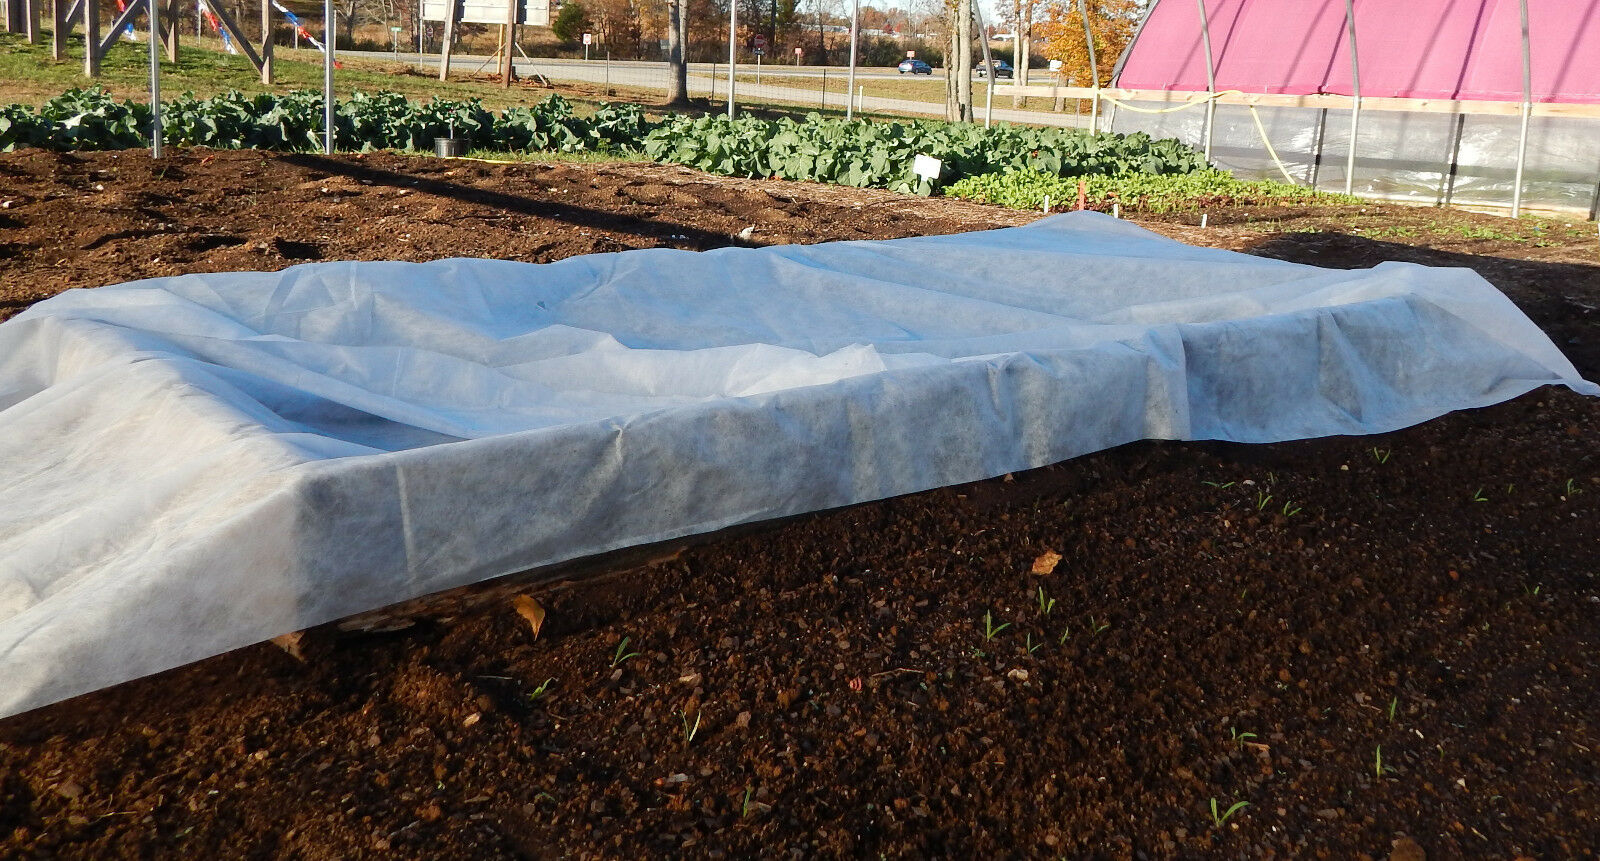 AG-0.5 Floating Row Crop Cover / Frost blanket / Garden Fabric - 6' x 50' - 1 Ea